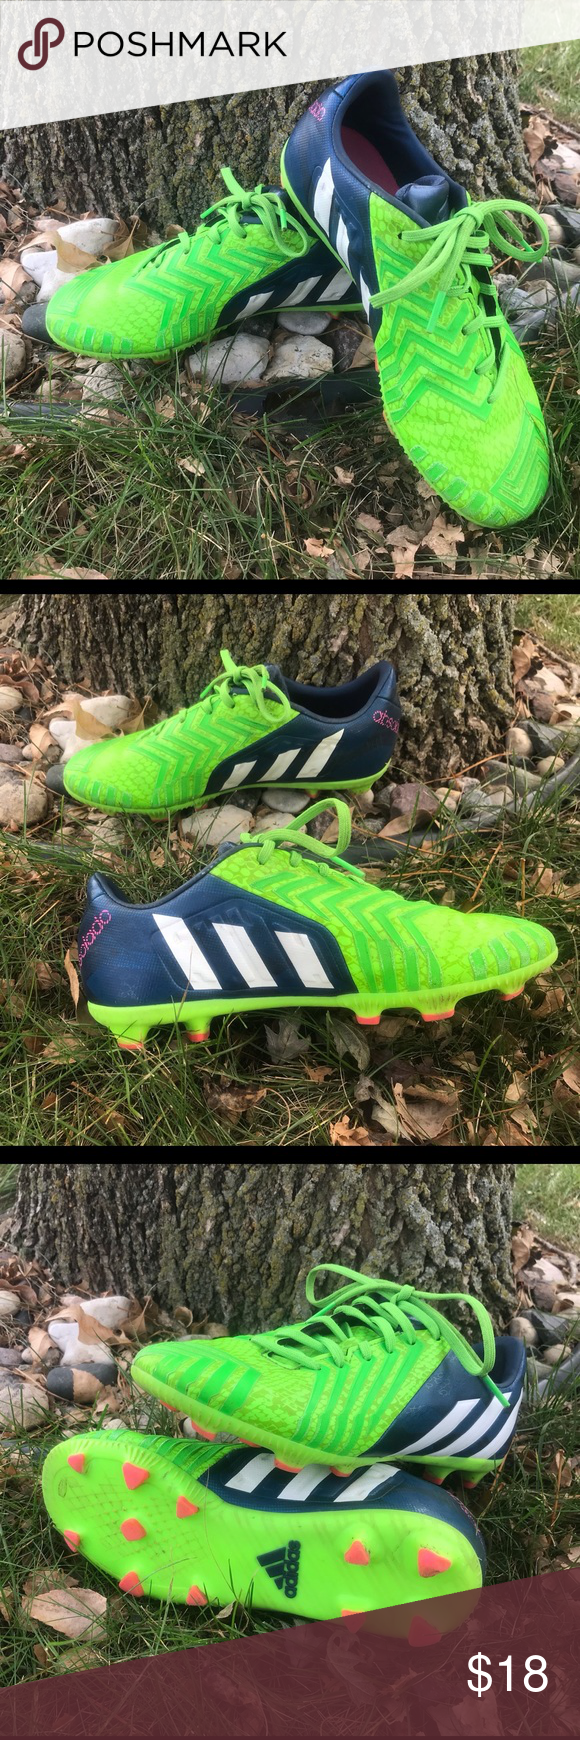 Youth size 4 Adidas soccer cleats